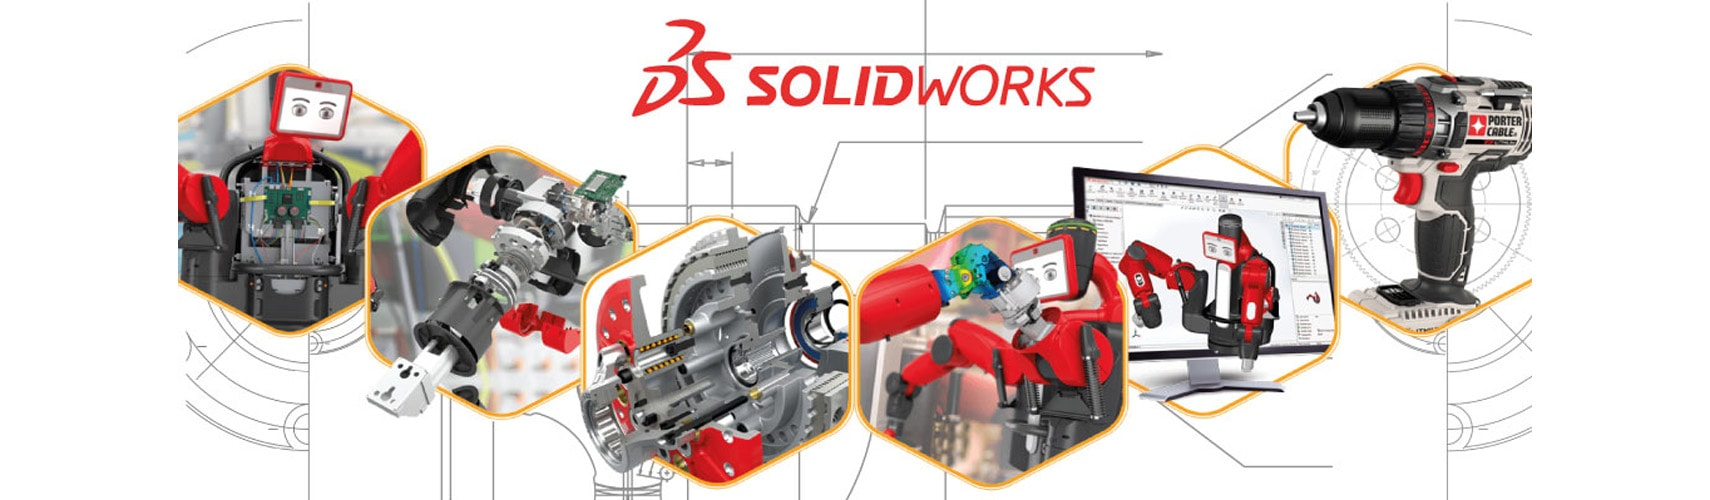 Free Solidworks Licence for Students